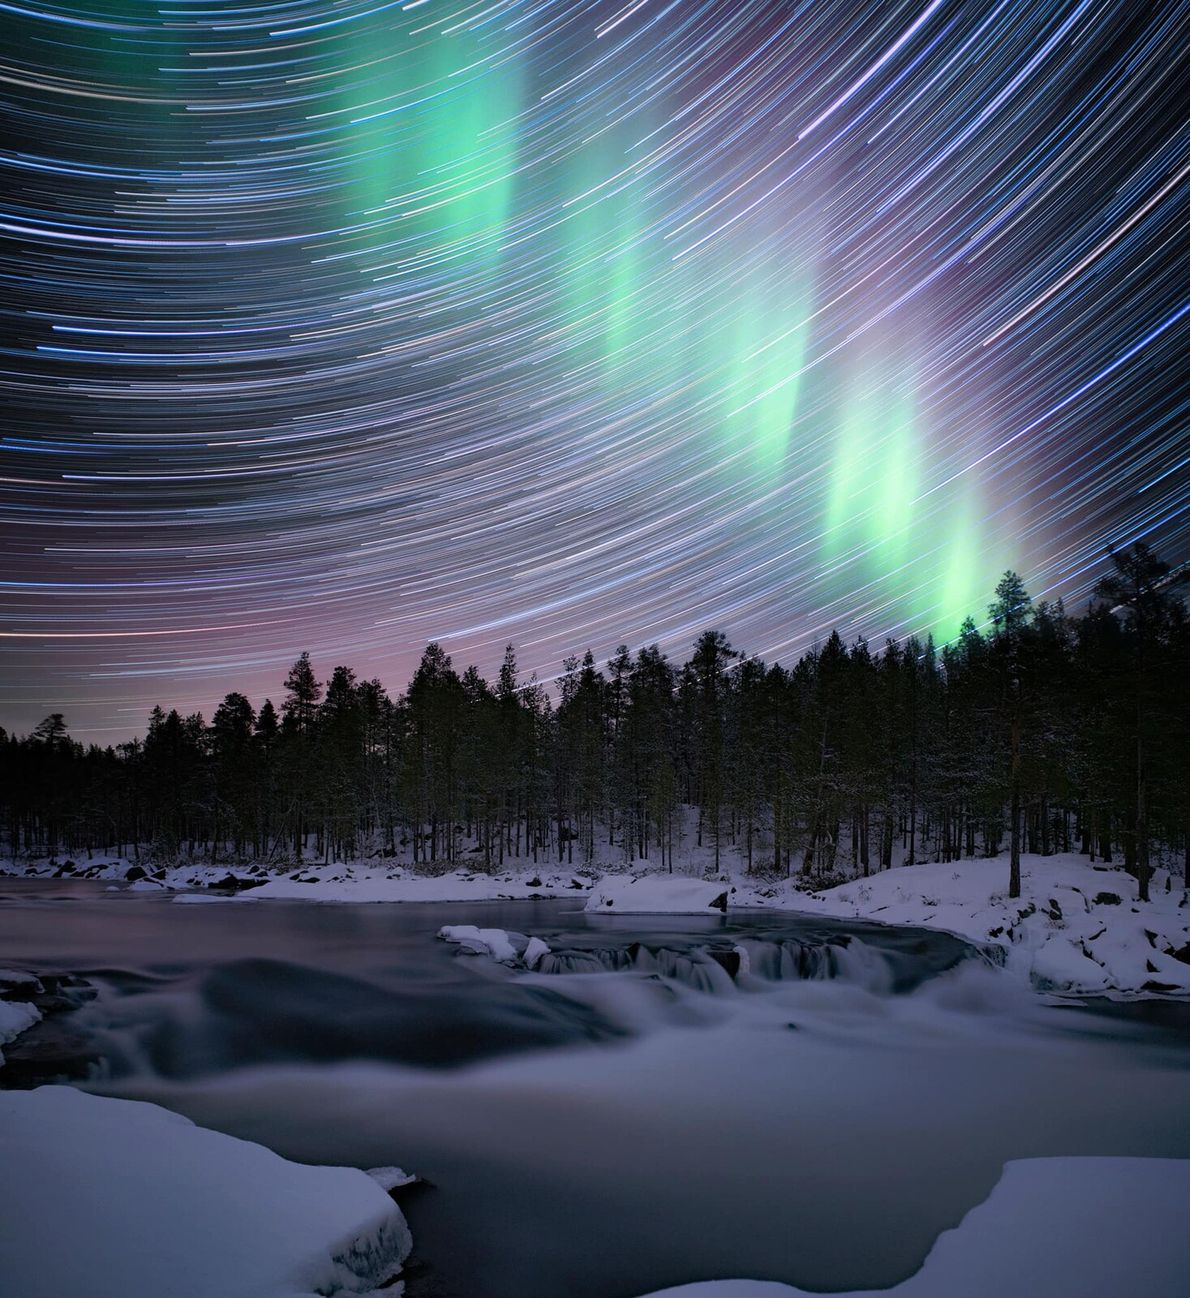 A mixture of water motion, star trails and the beginning of the display of the aurora ...